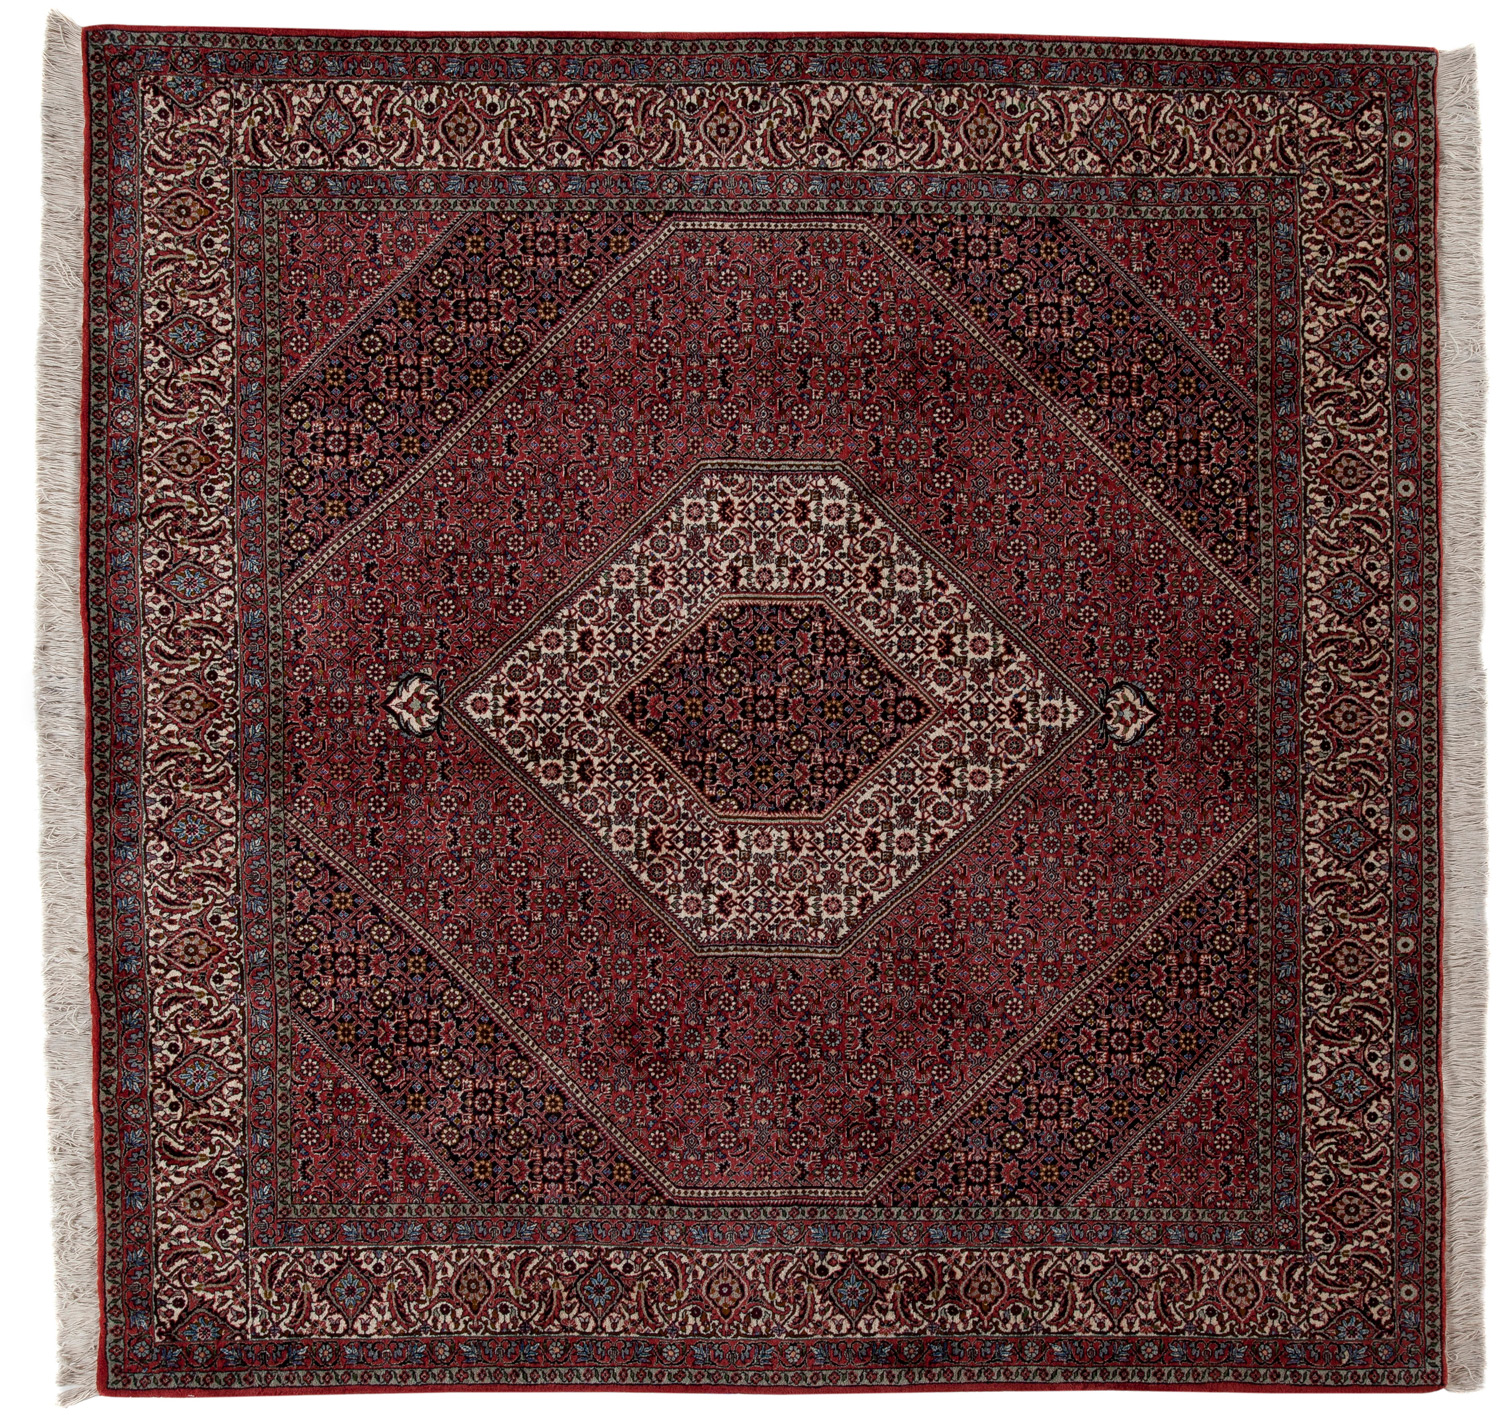 Wool Hand Knotted Persian Rug